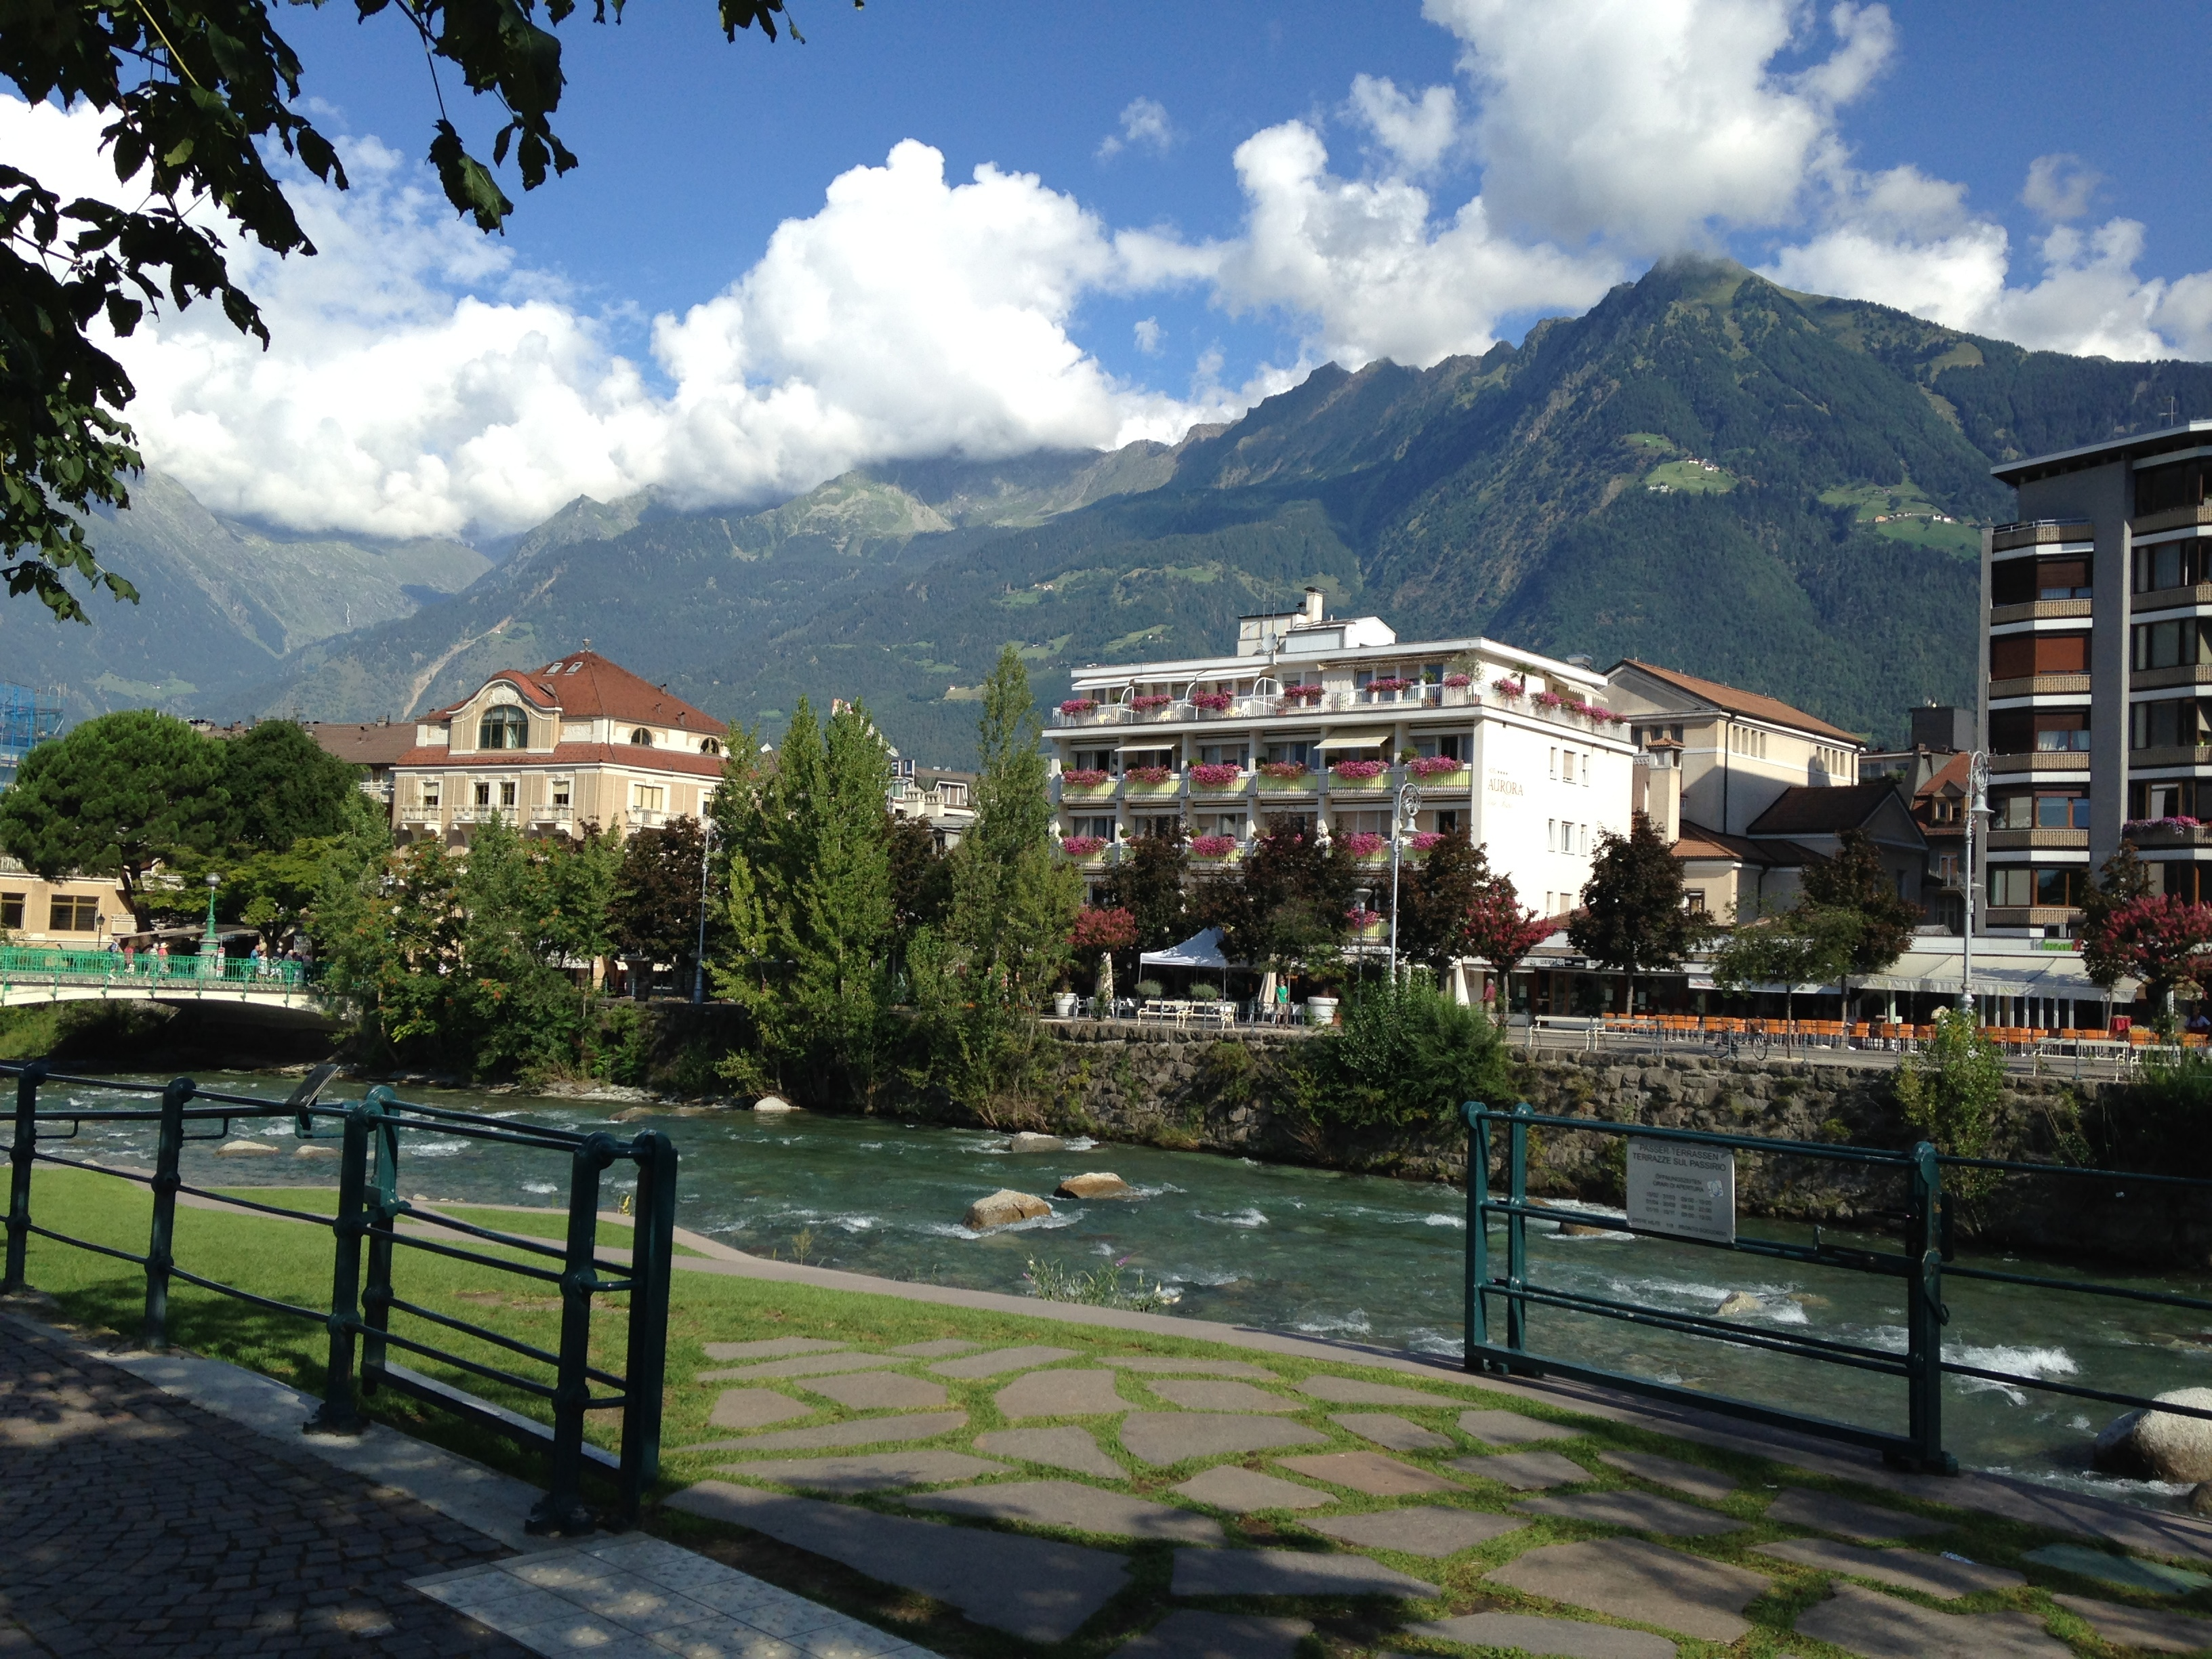 <p>Merano, relaxing just to look at! Courtesy Sunny&nbsp;Yudkoff</p>